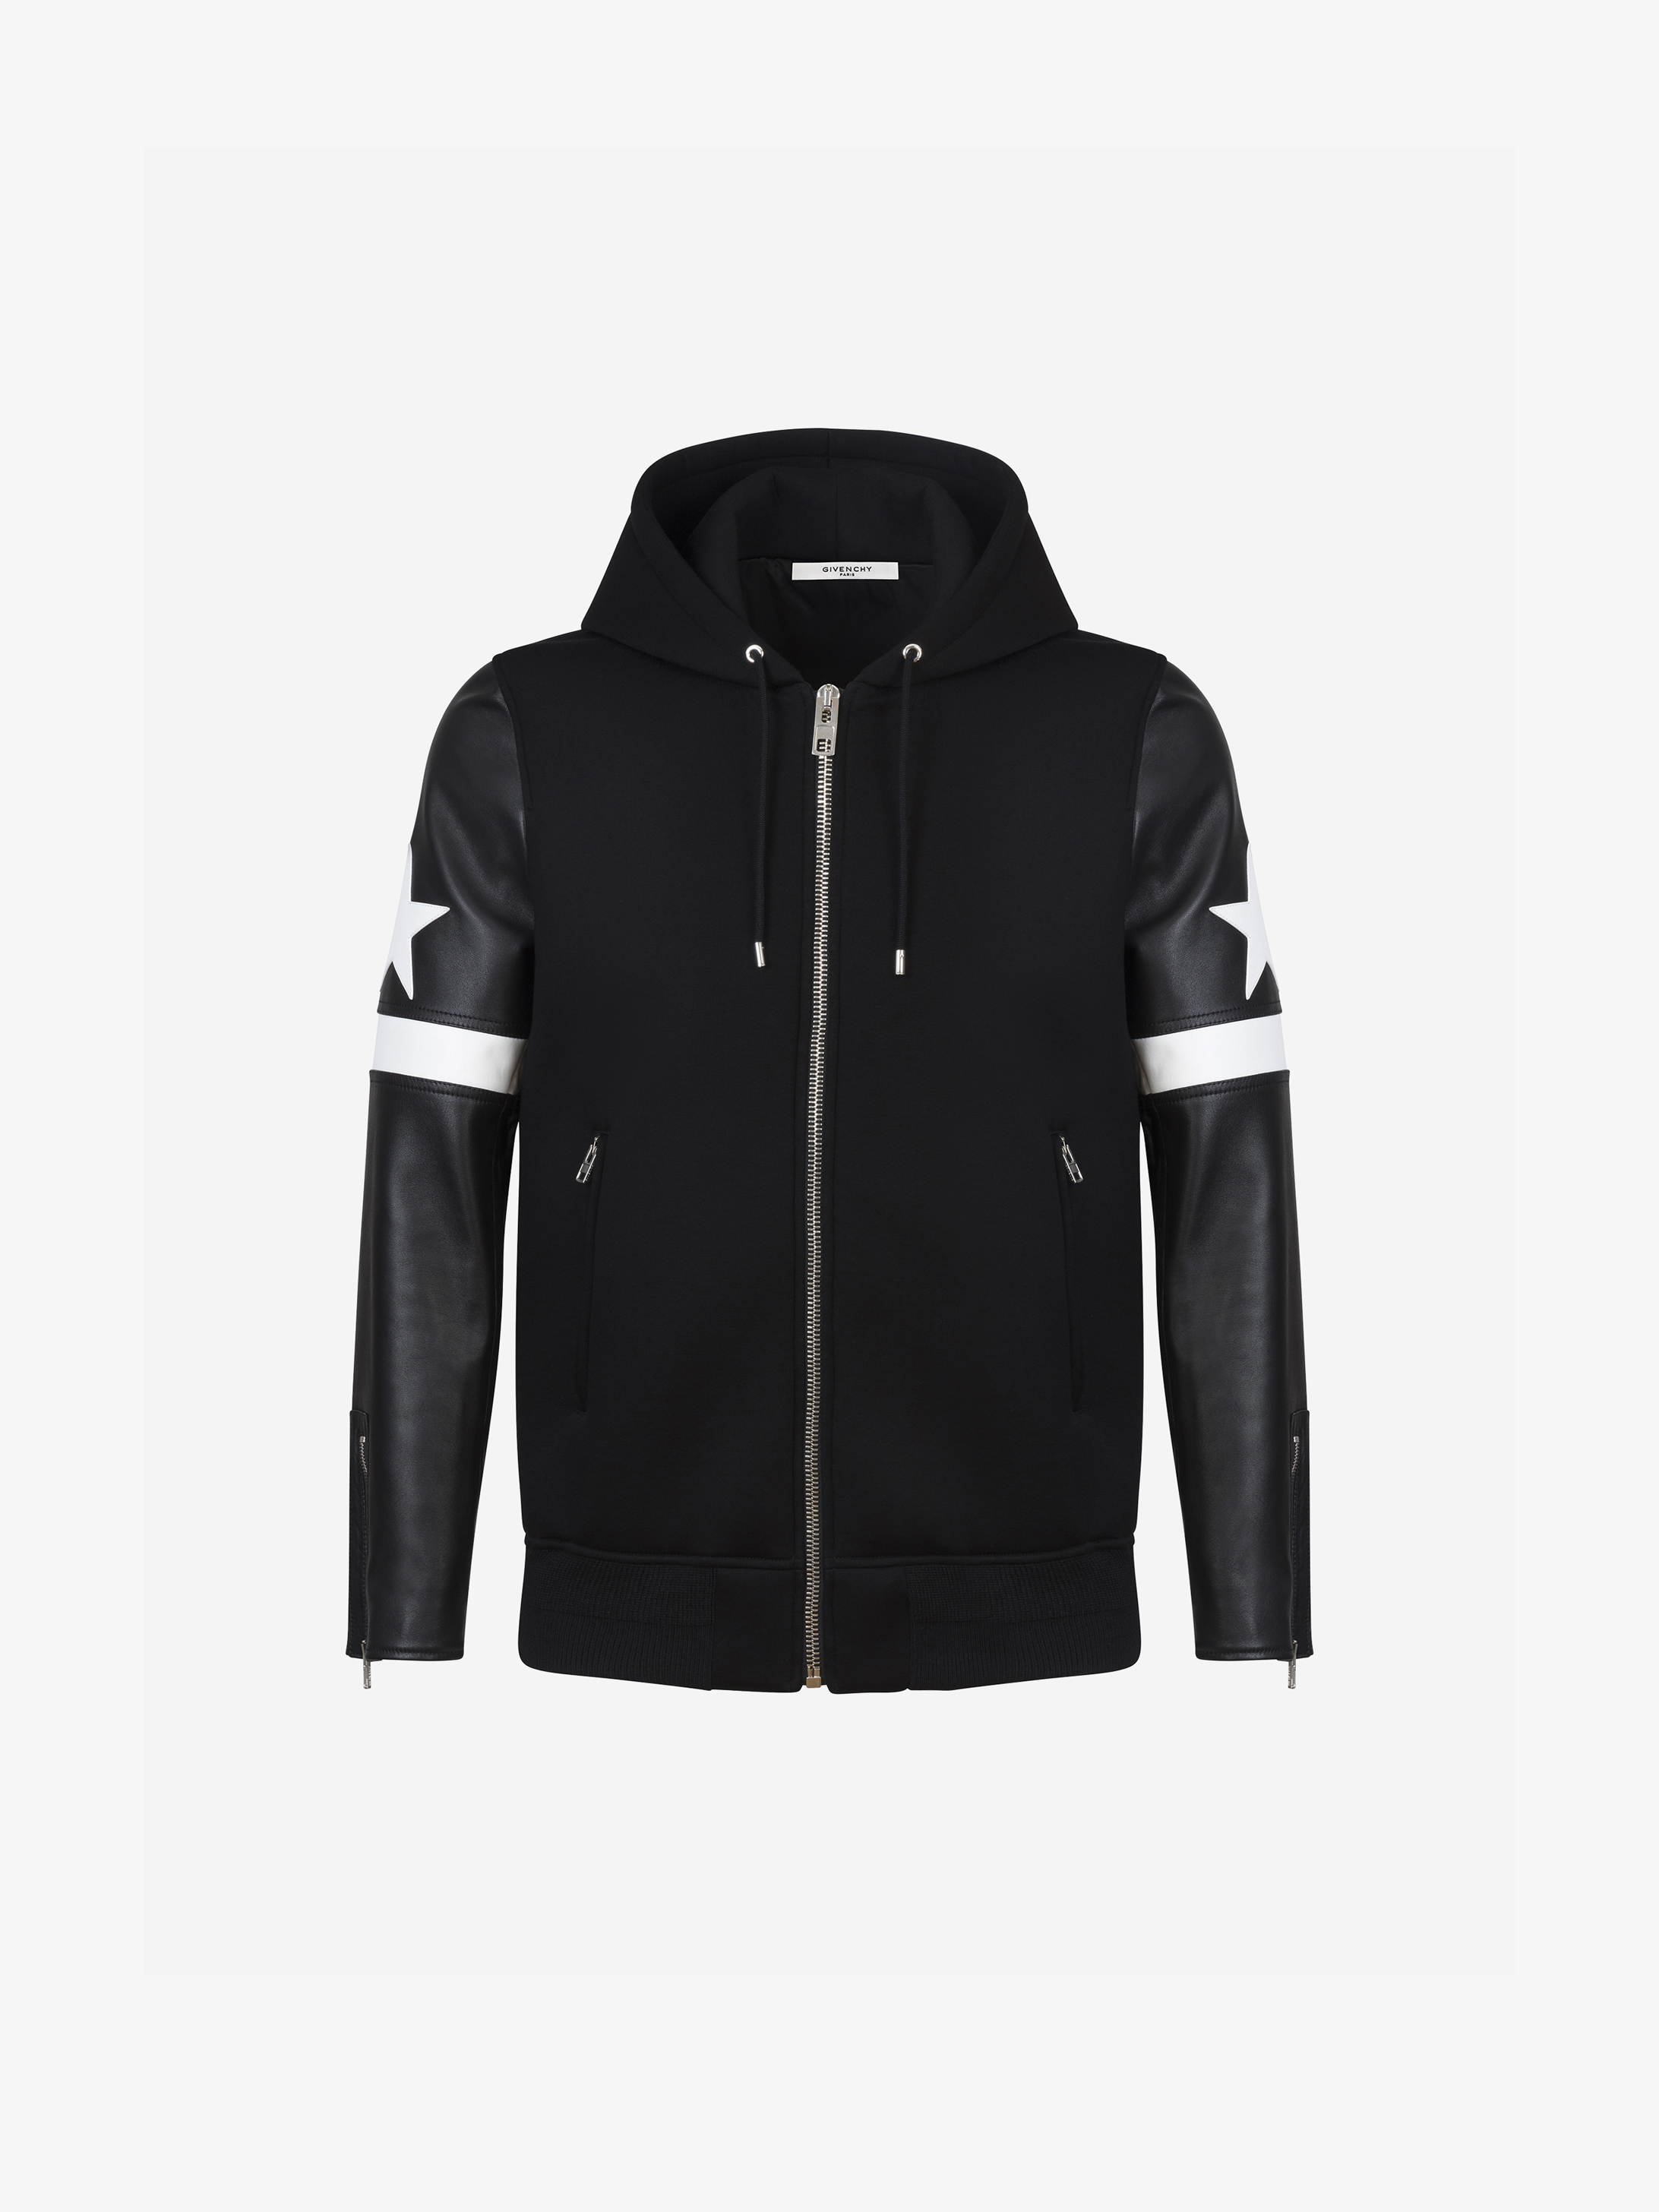 Hoodie in leather and neoprene